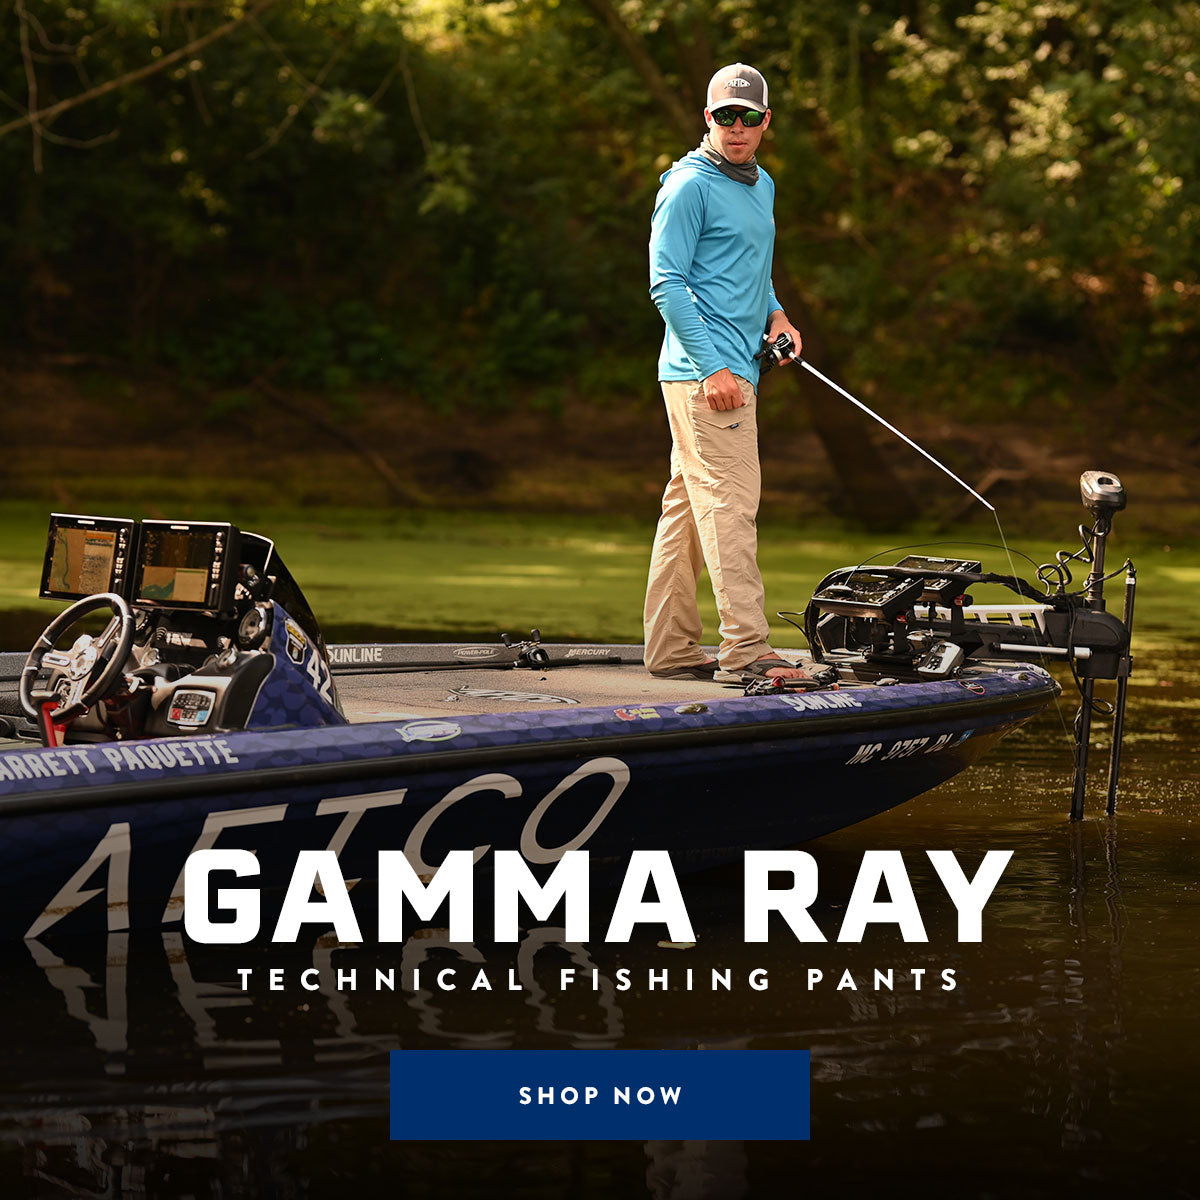 Gamma Ray Technical Fishing Pants